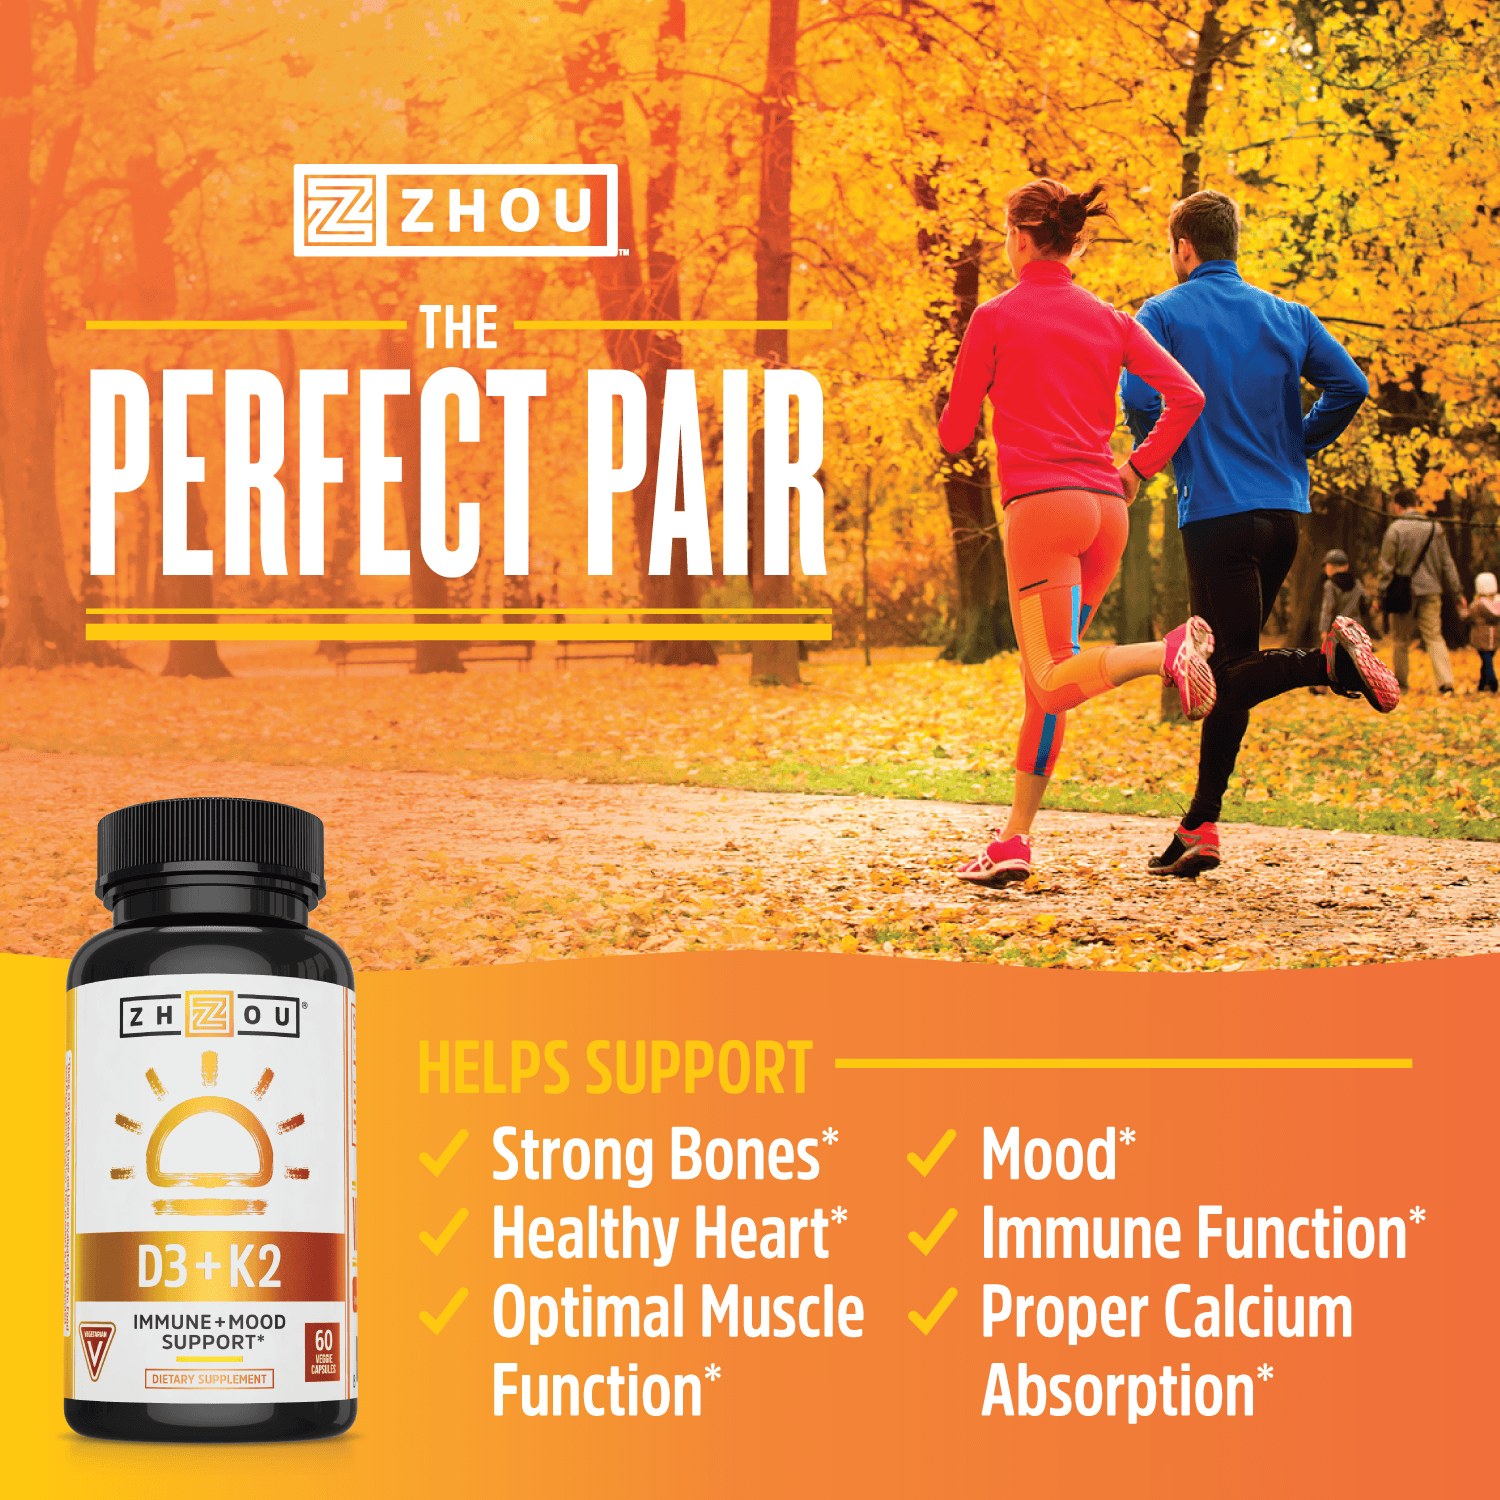 The perfect pair. Vitamin D3 and K2 help support strong bones, healthy heart, optimal muscle function, mood, immune function, proper calcium absorption.